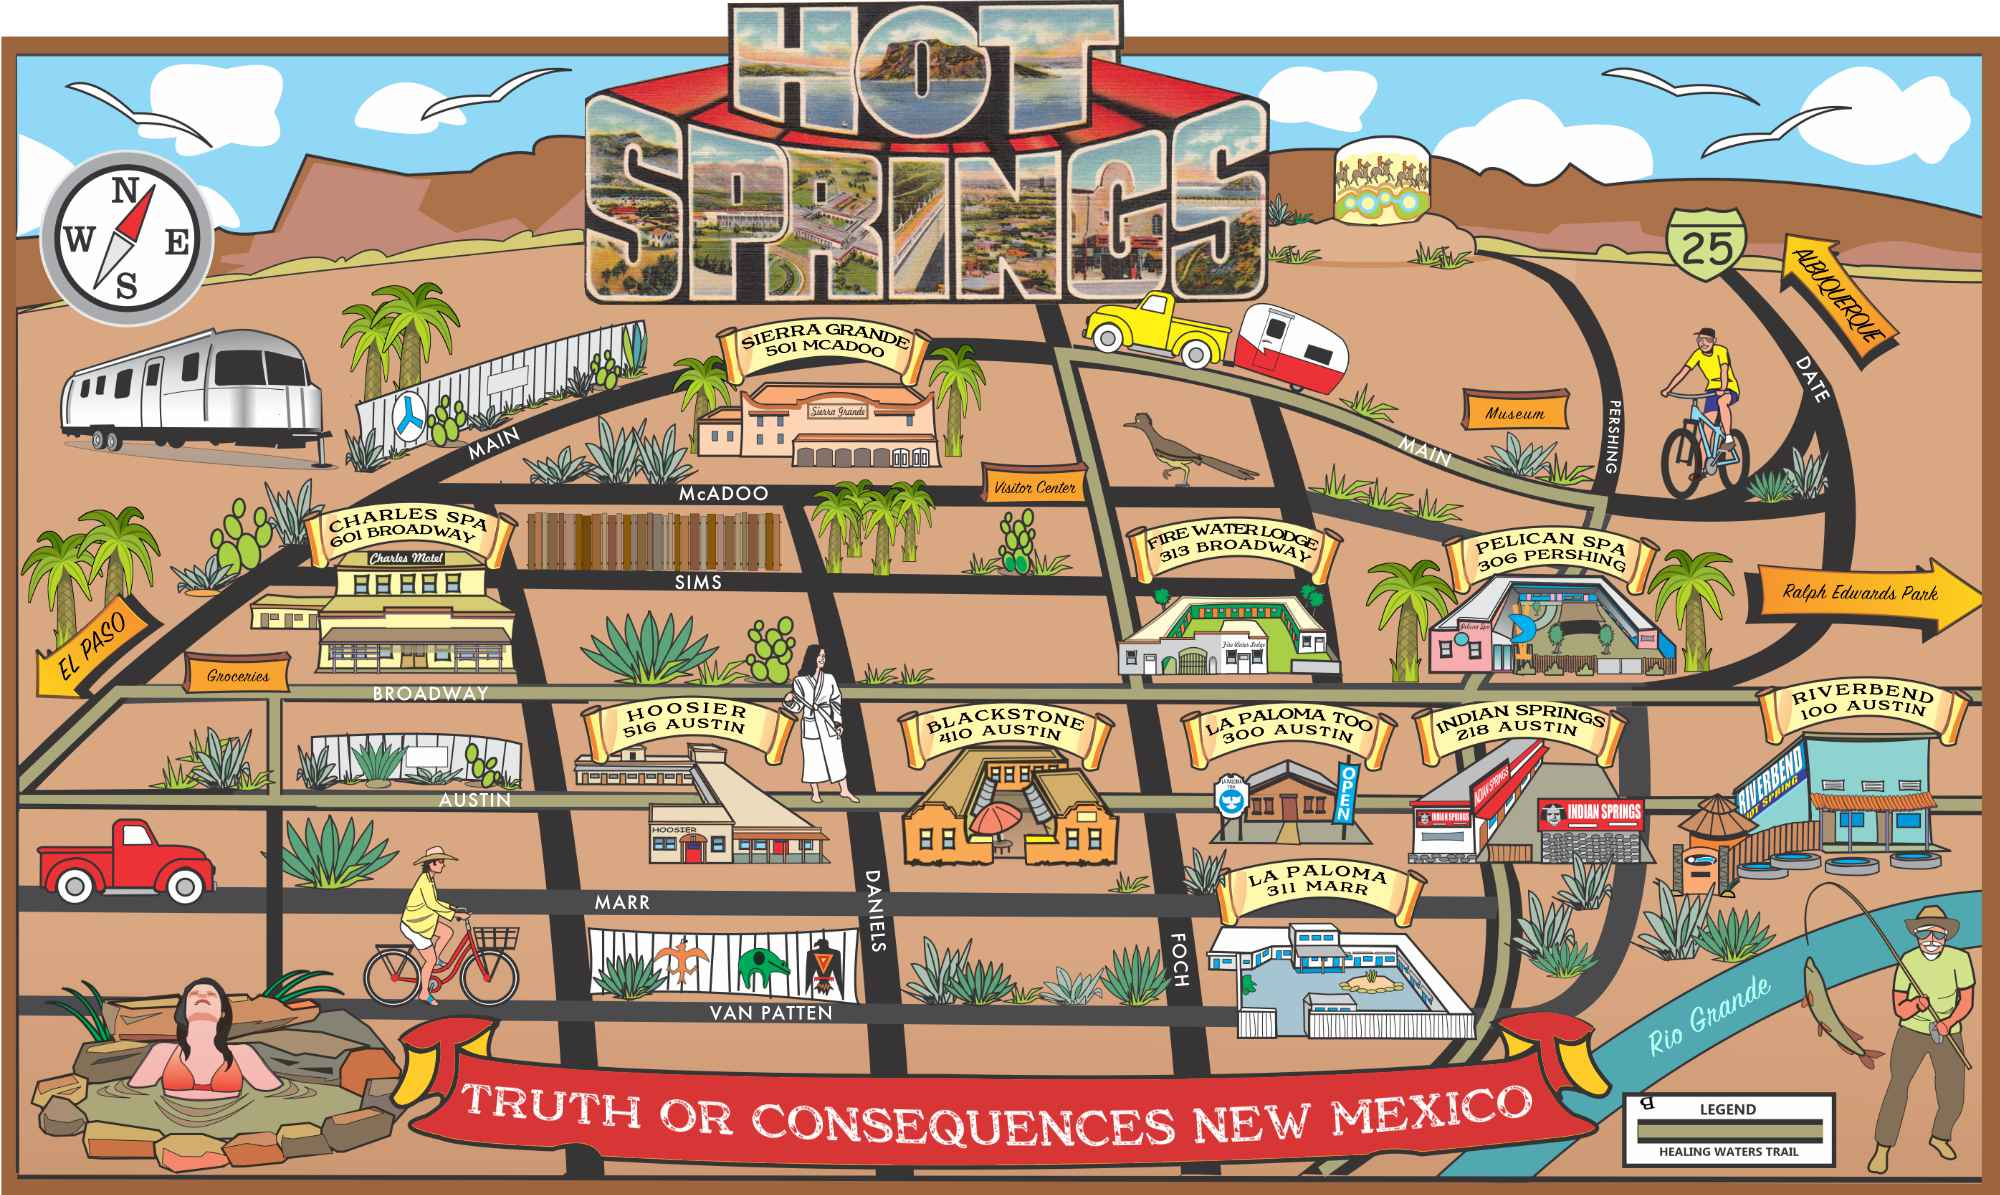 Truth or Consequences formerly Hot Springs New Mexico map of the eleven commercial hot spring spas